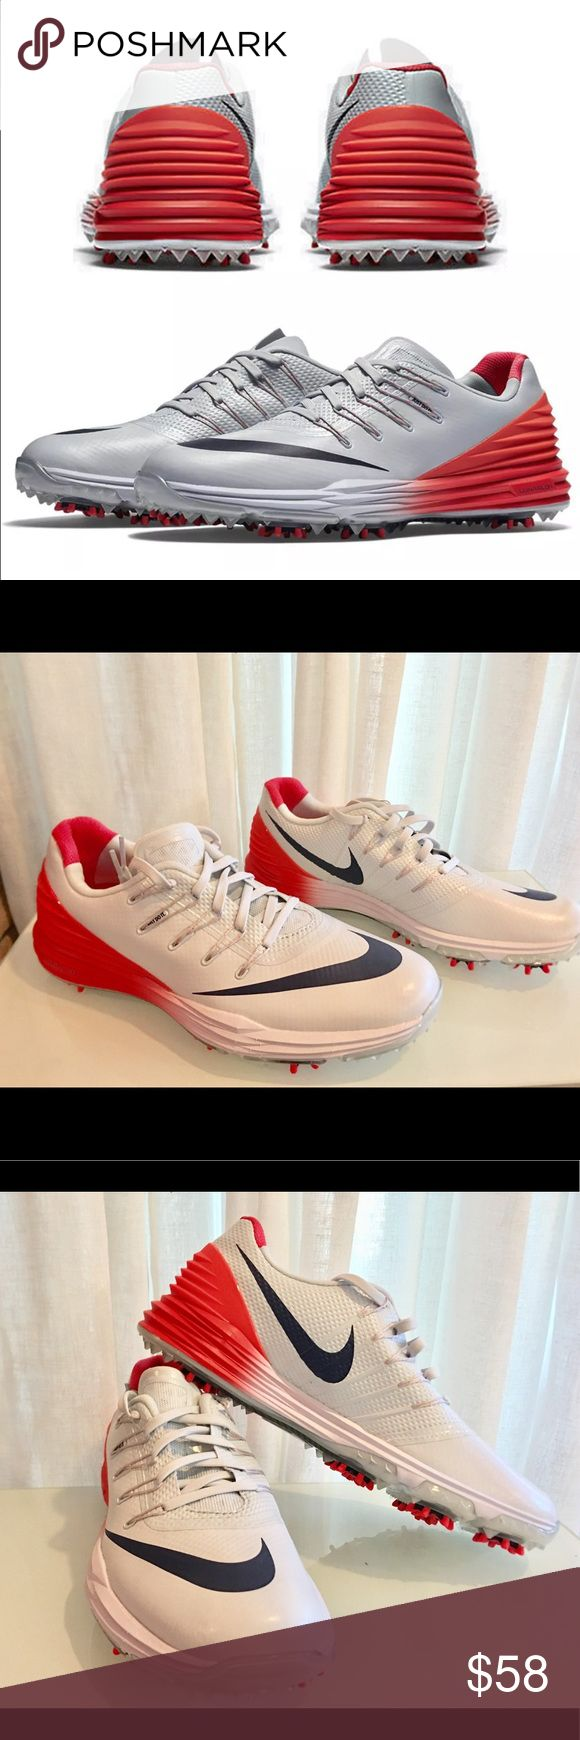 NIKE LUNAR CONTROL 4 WOMENS GOLF SHOES SIZE 9 NWOB NIKE LUNAR CONTROL 4 WOMENS GOLF SHOES SIZE 9 PLATINUM CRIMSON NAVY 819034-002 nike Shoes Athletic Shoes